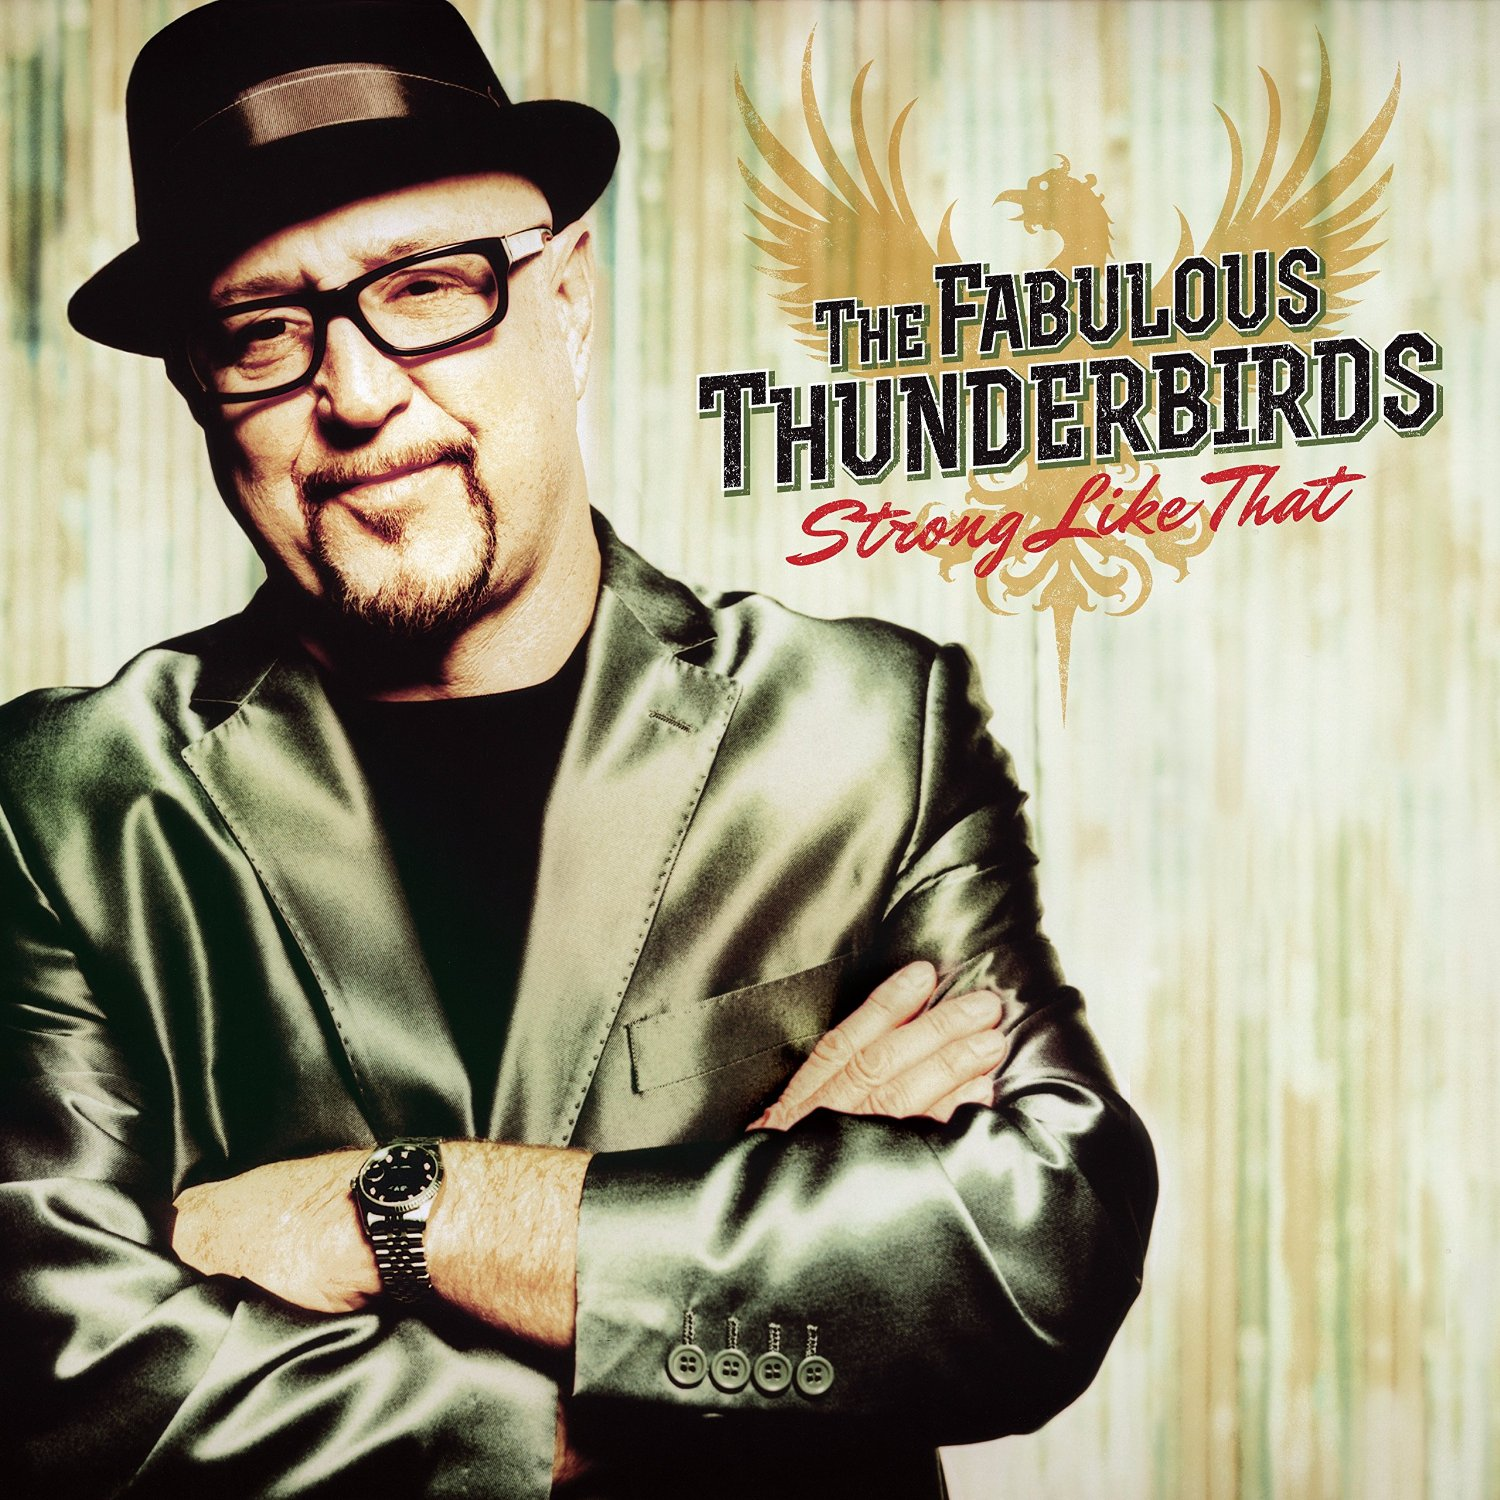 Images of The Fabulous Thunderbirds   1500x1500